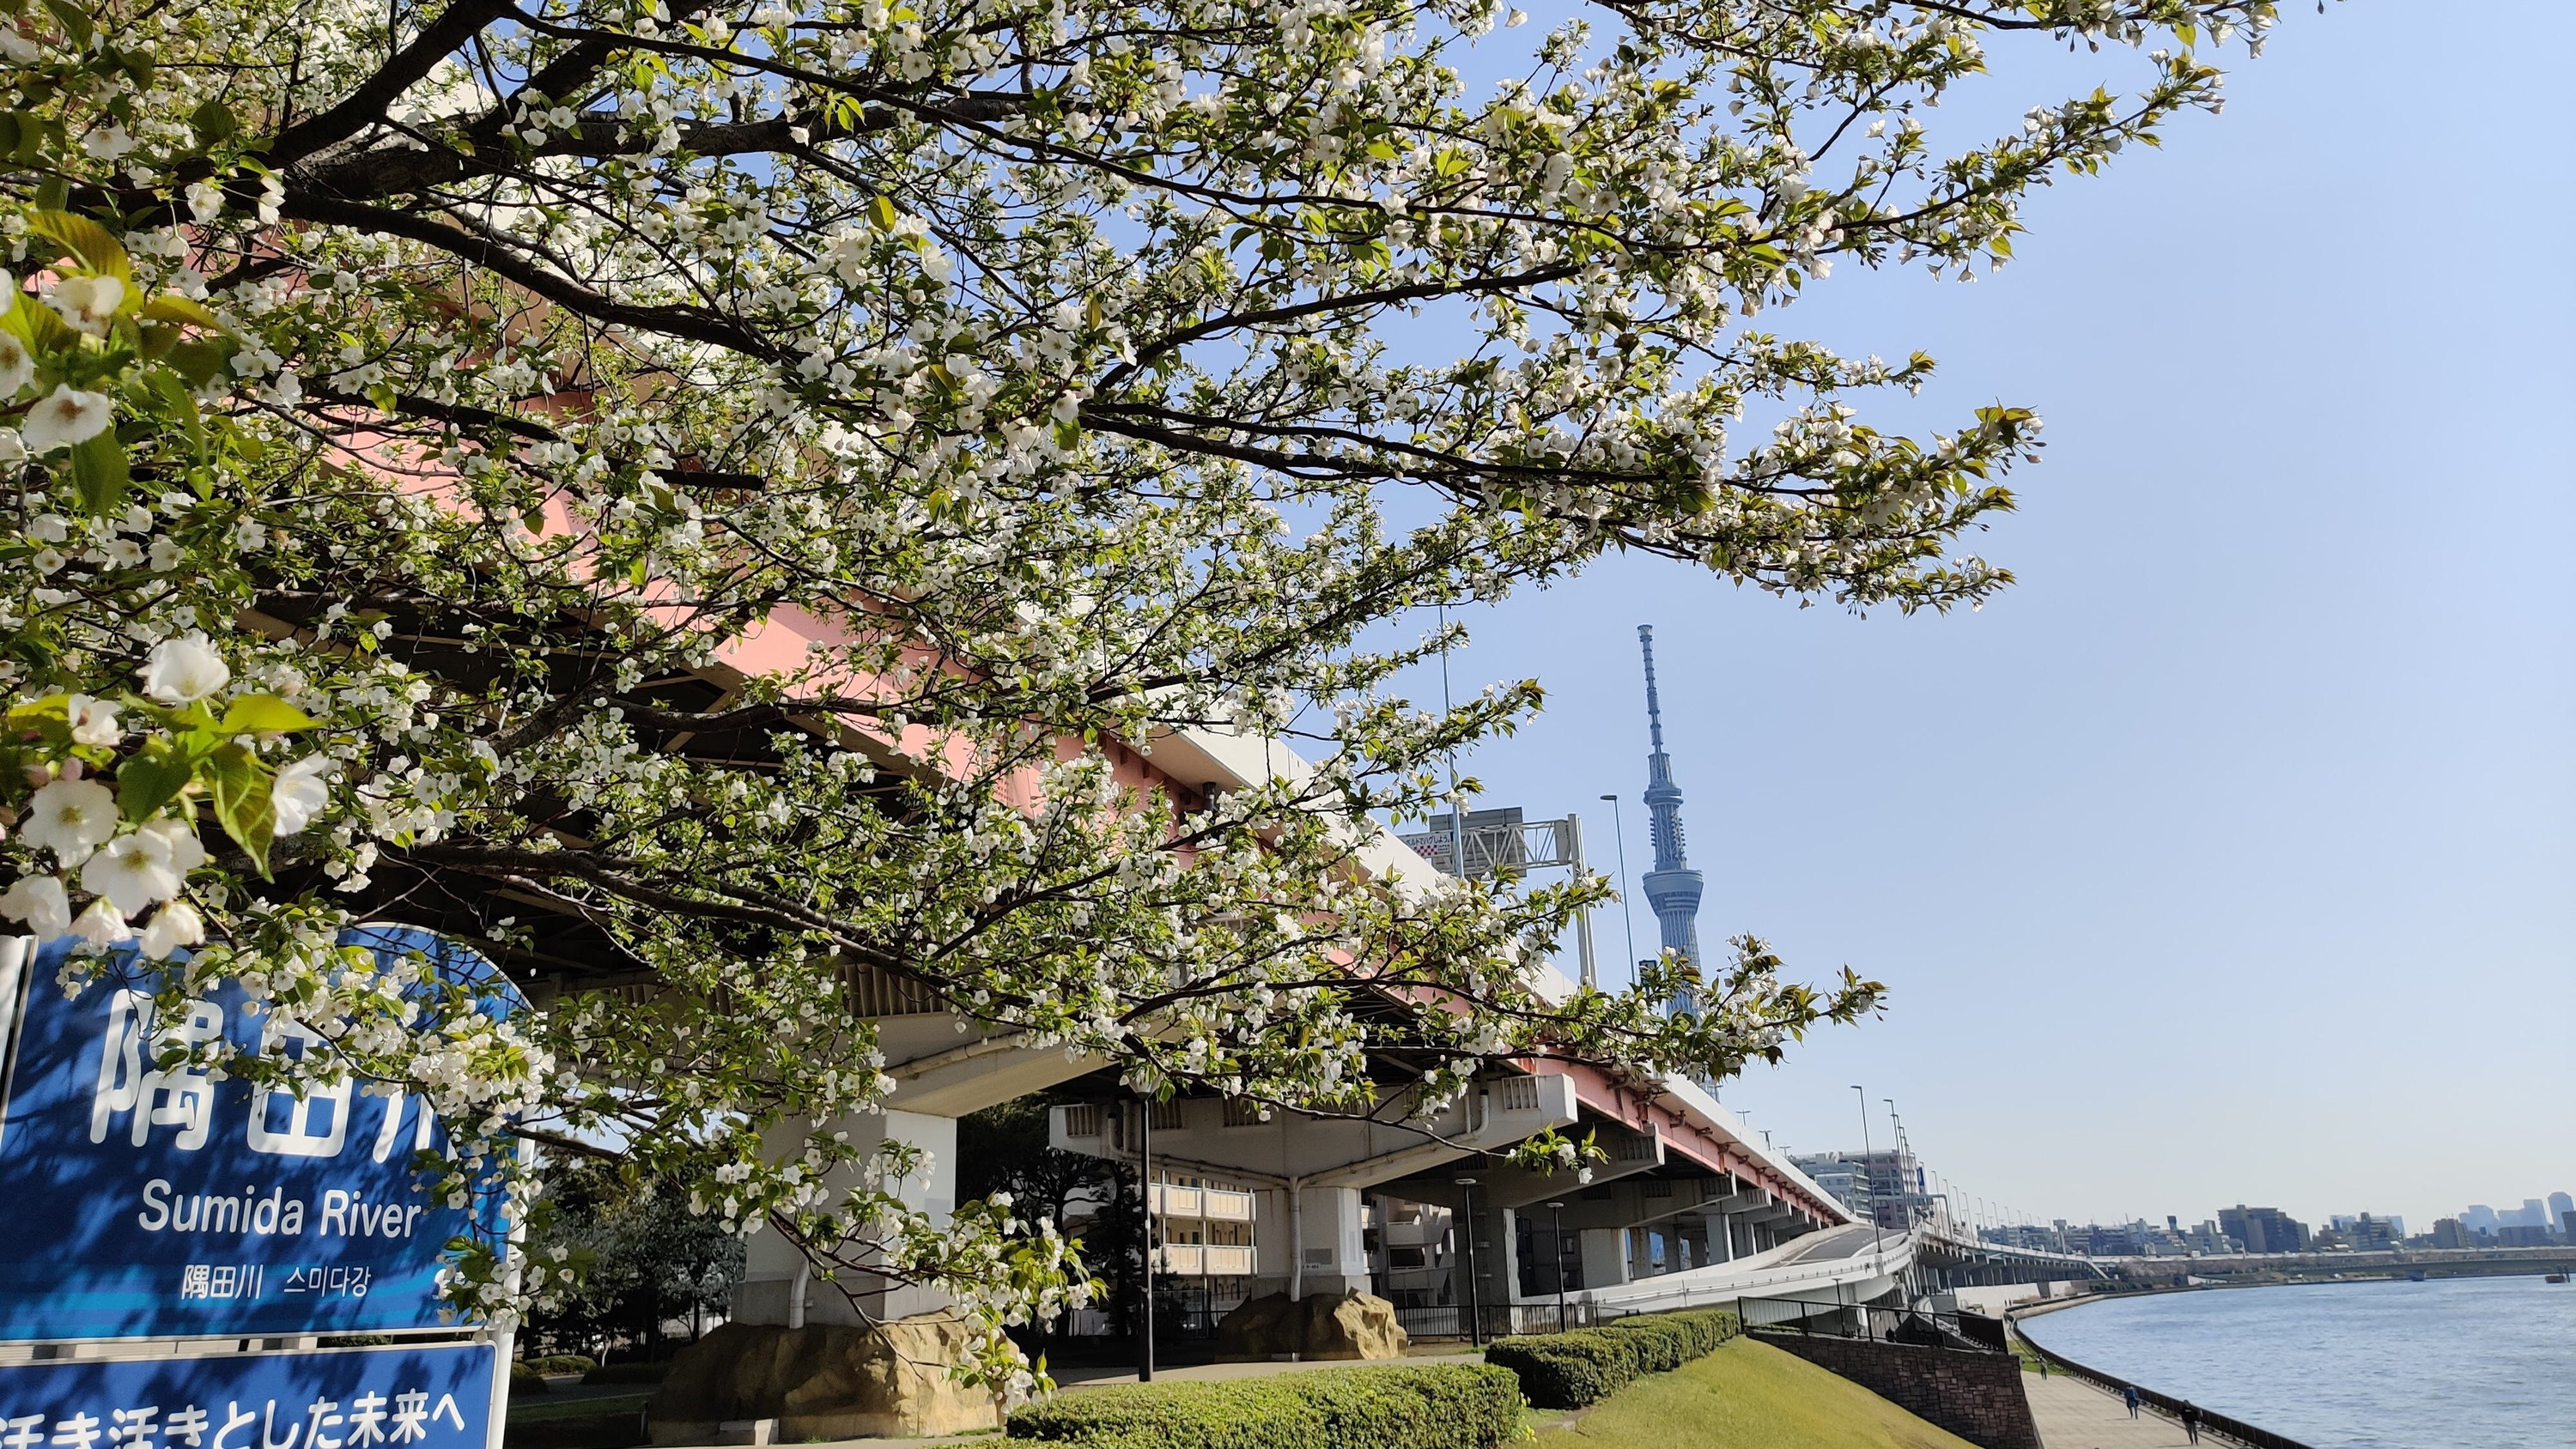 Sumida River, cherry blossoms, sakura, Skytree